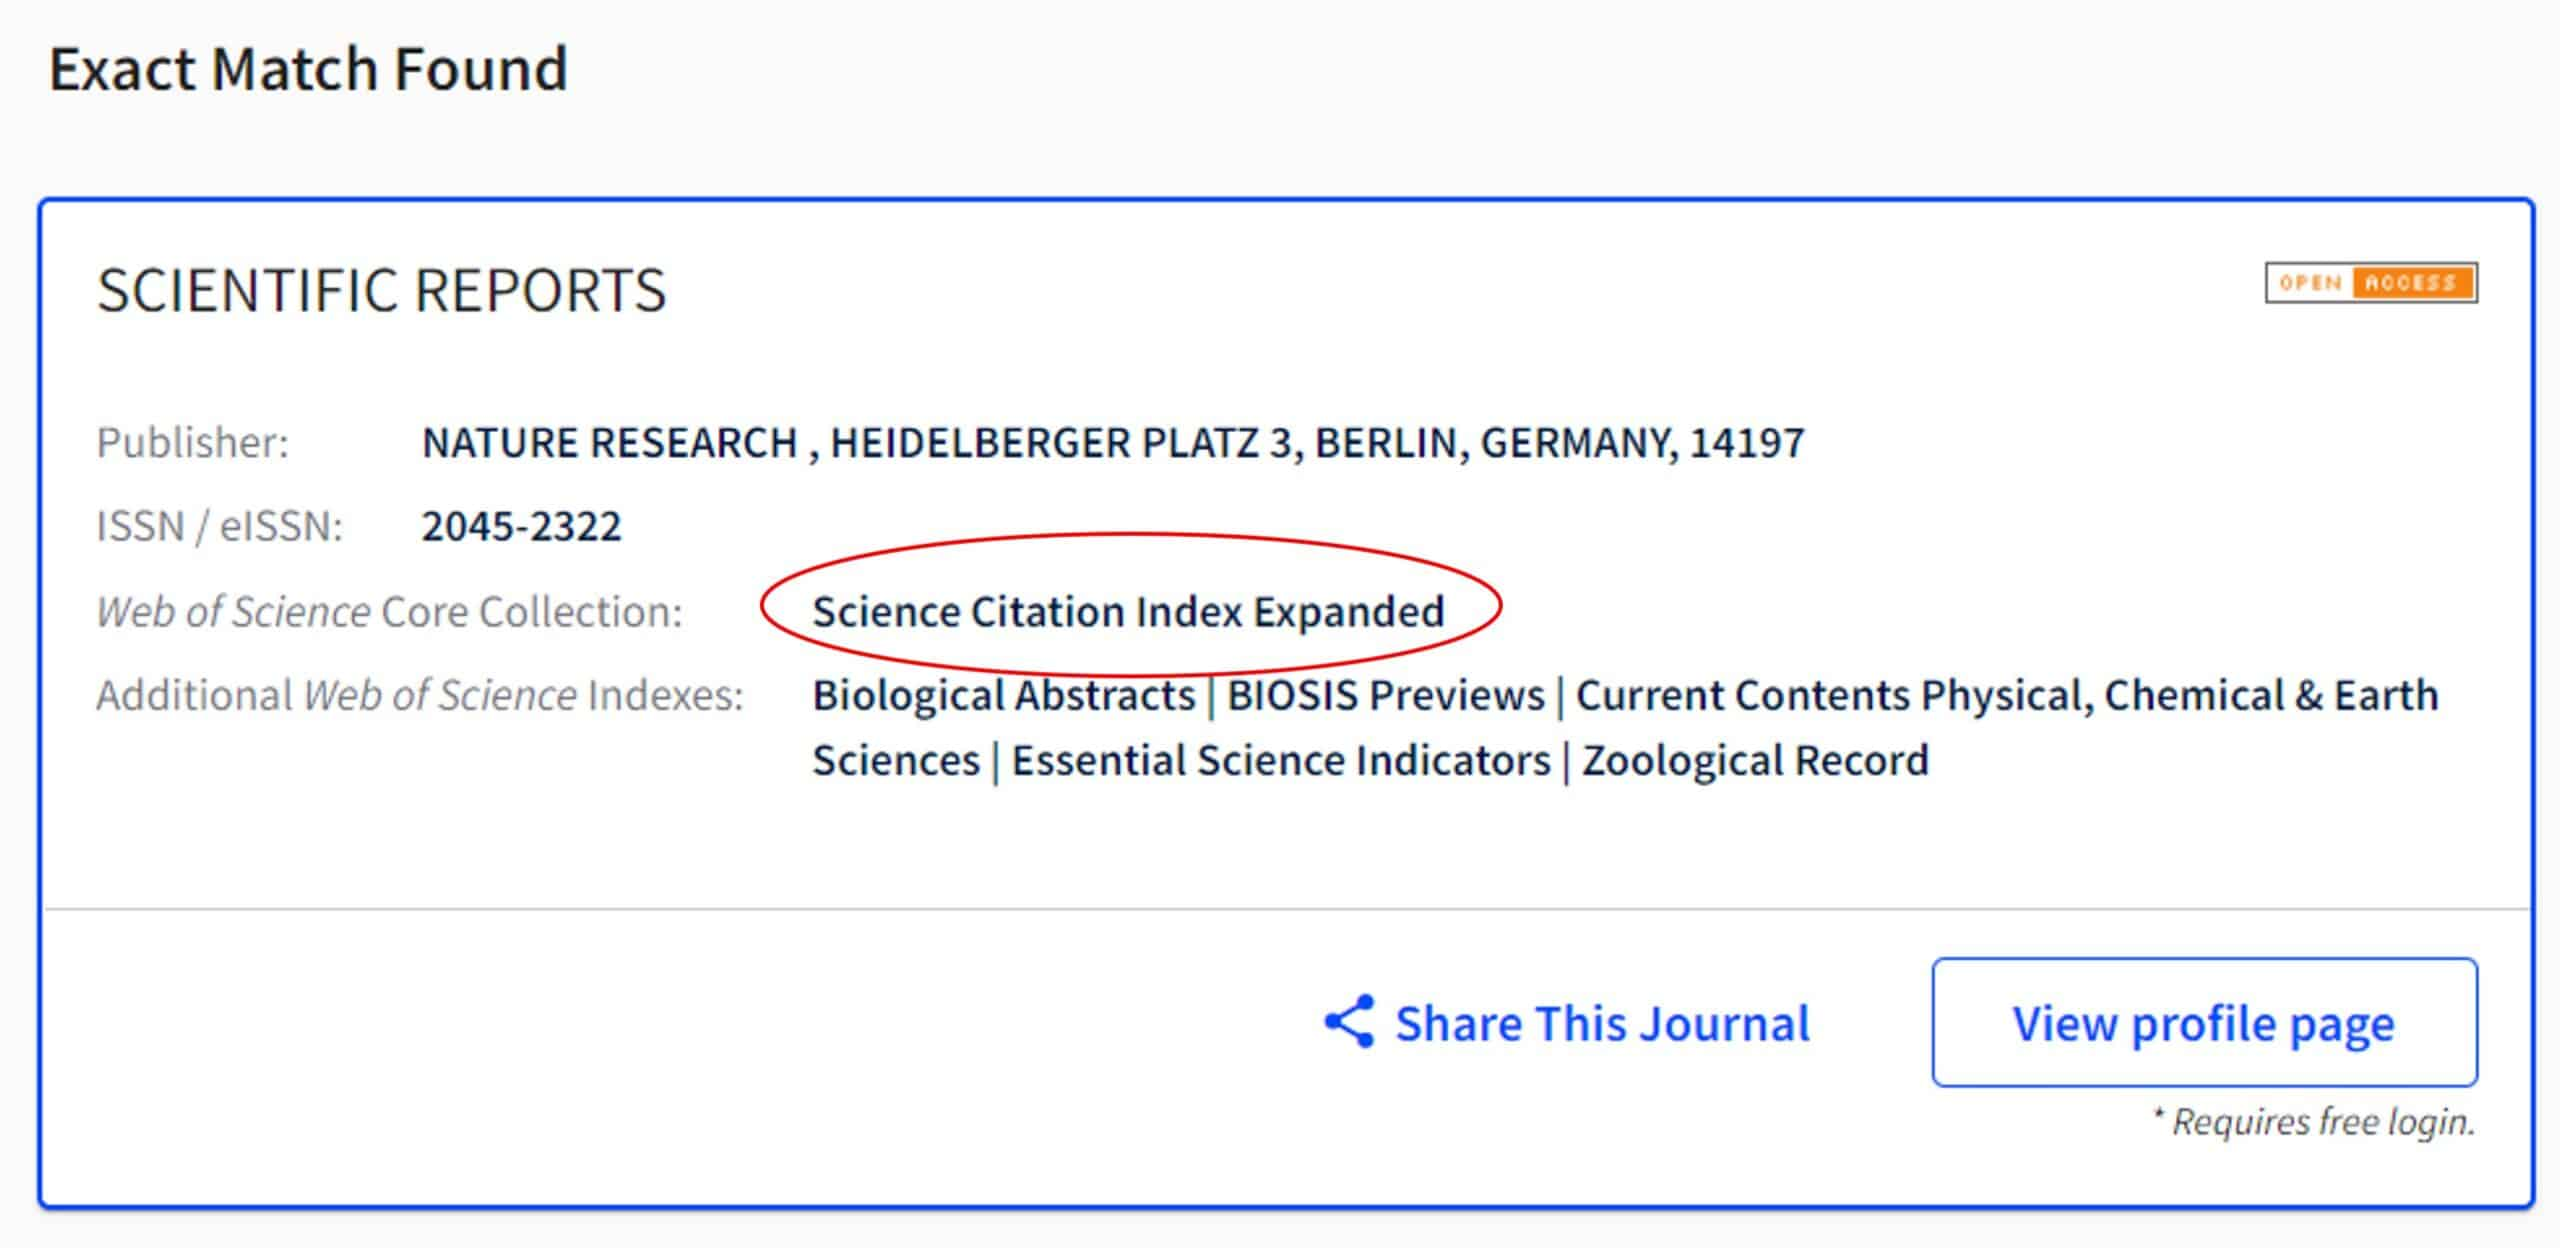 Image describing how to search for a journal on the Web of Science master list. The journal Scientific Reports is listed here as being indexed in the Science Citation Index Expanded, indicating that it is a high-quality journal